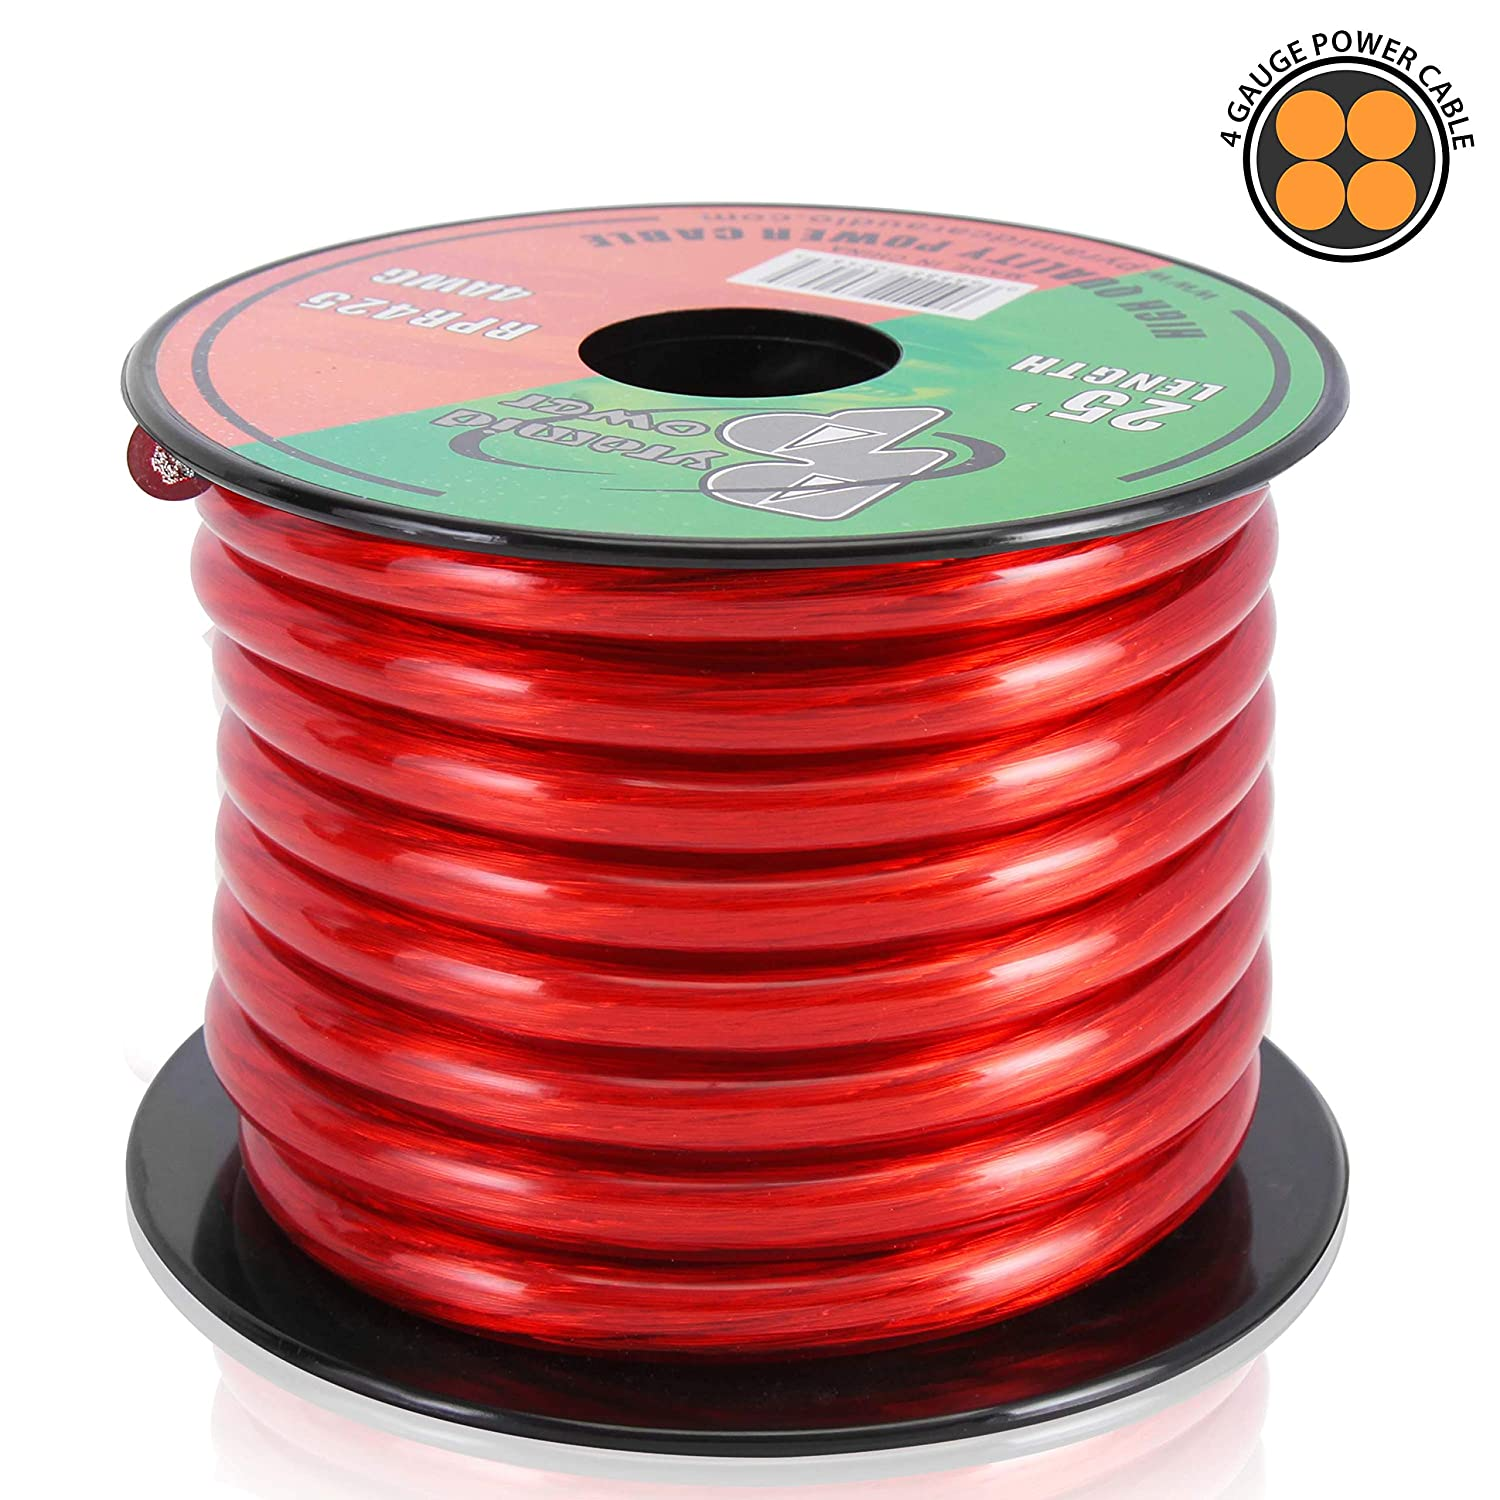 B000K8IZCM 4-Gauge Clear Red Power Wire - 25 Feet 4 AWG Oxygen-Free Copper Power Cable Wire w/ Translucent Matte Insulator, Chemical and Heat-Resistant - Pyramid RPR425 81G2ZzV1E1L